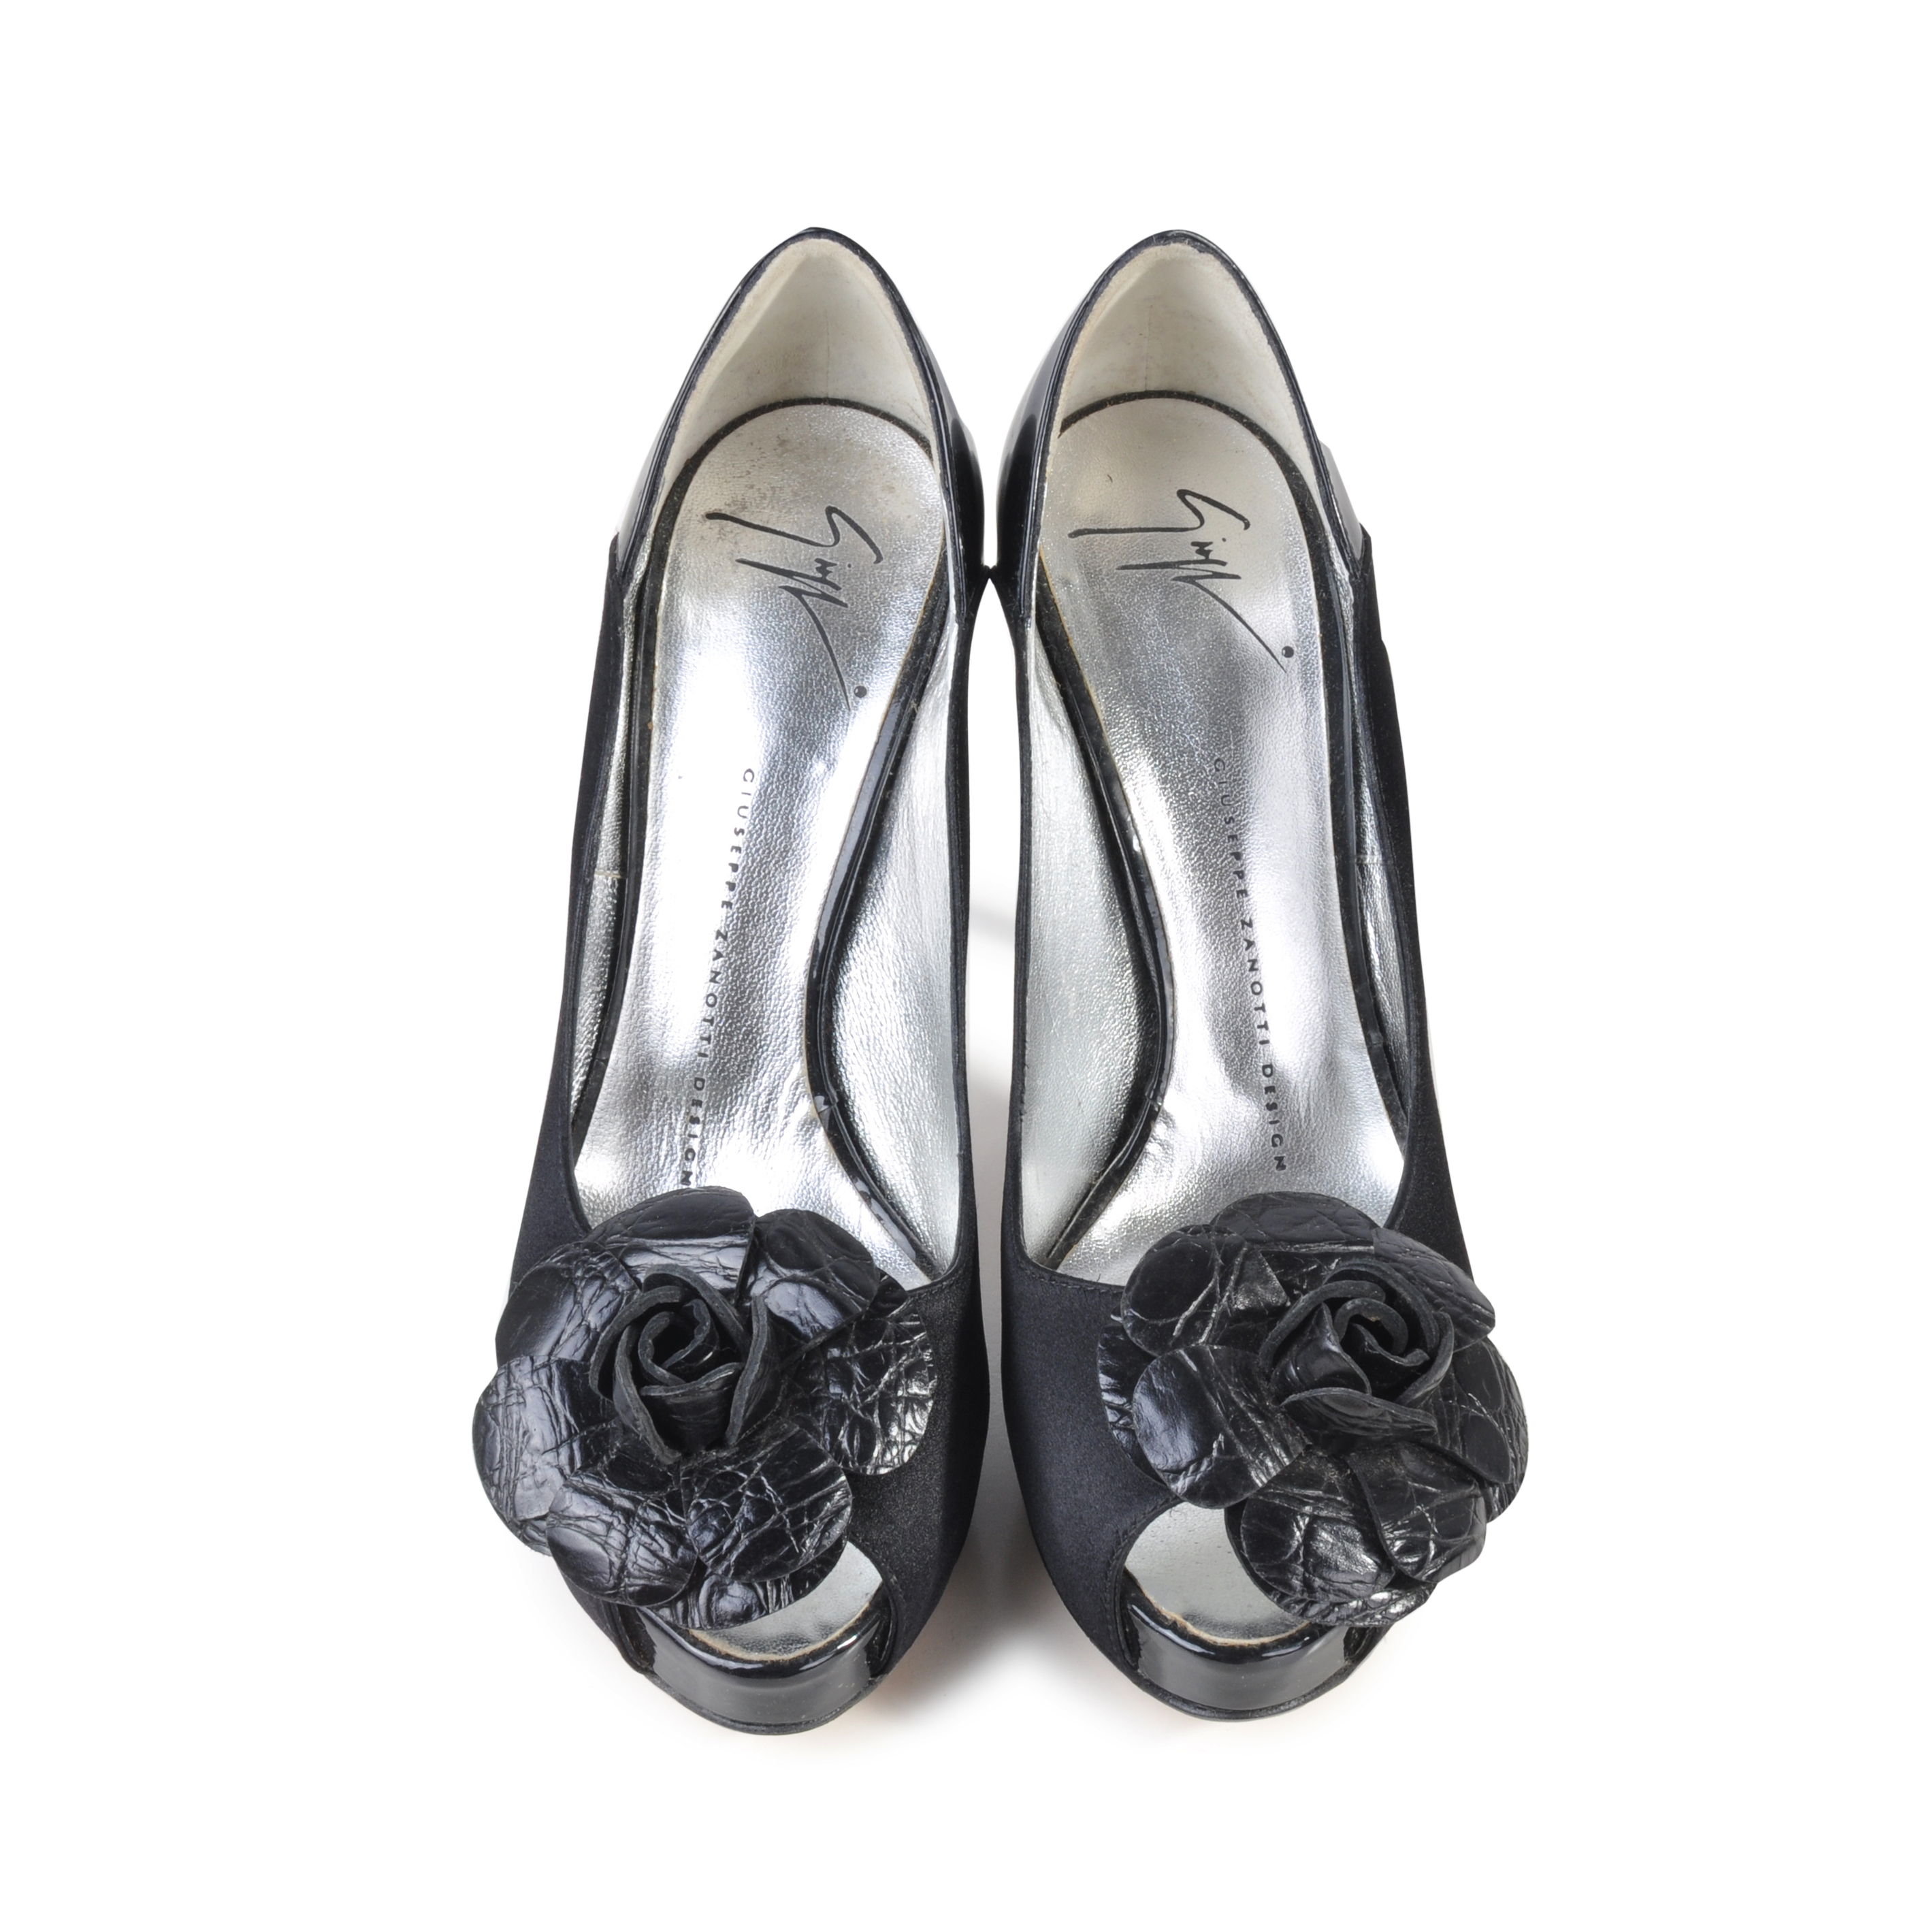 45611a83a01ca Authentic Second Hand Giuseppe Zanotti Floral Accented Pumps  (PSS-049-00007) - THE FIFTH COLLECTION